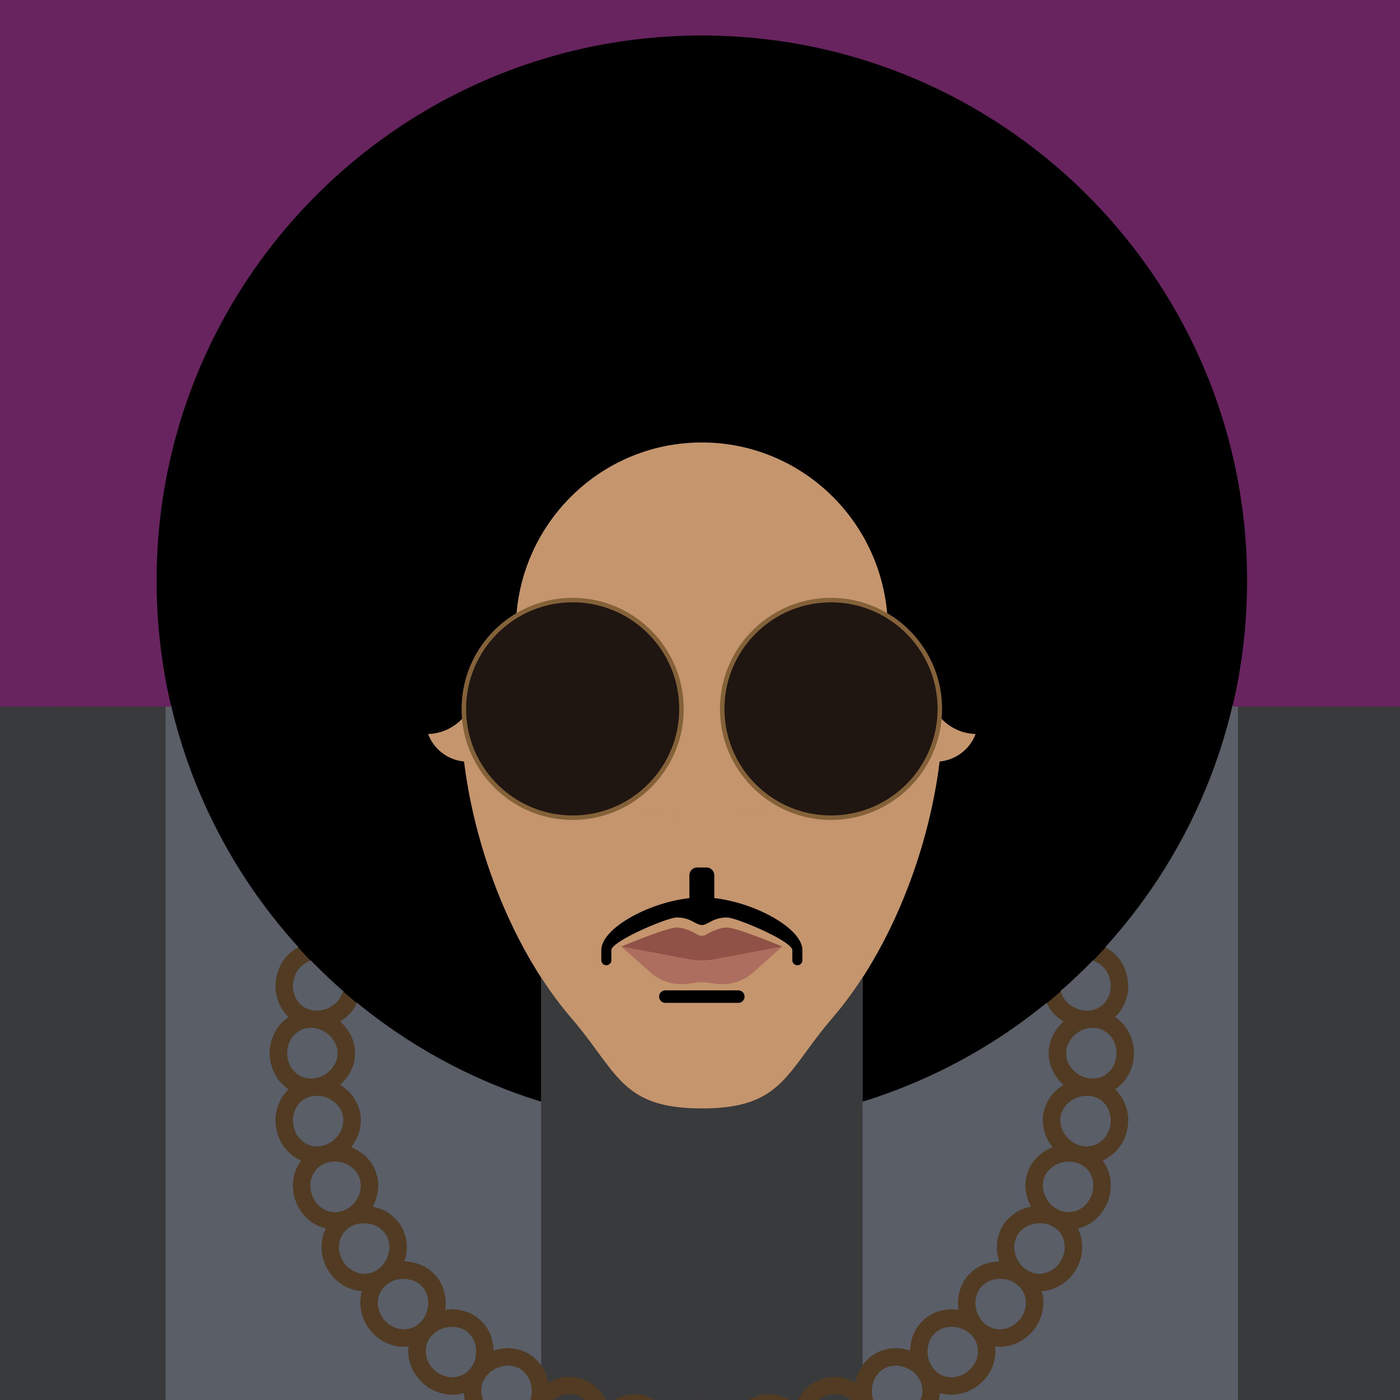 Prince records single inspired by Baltimore unrest